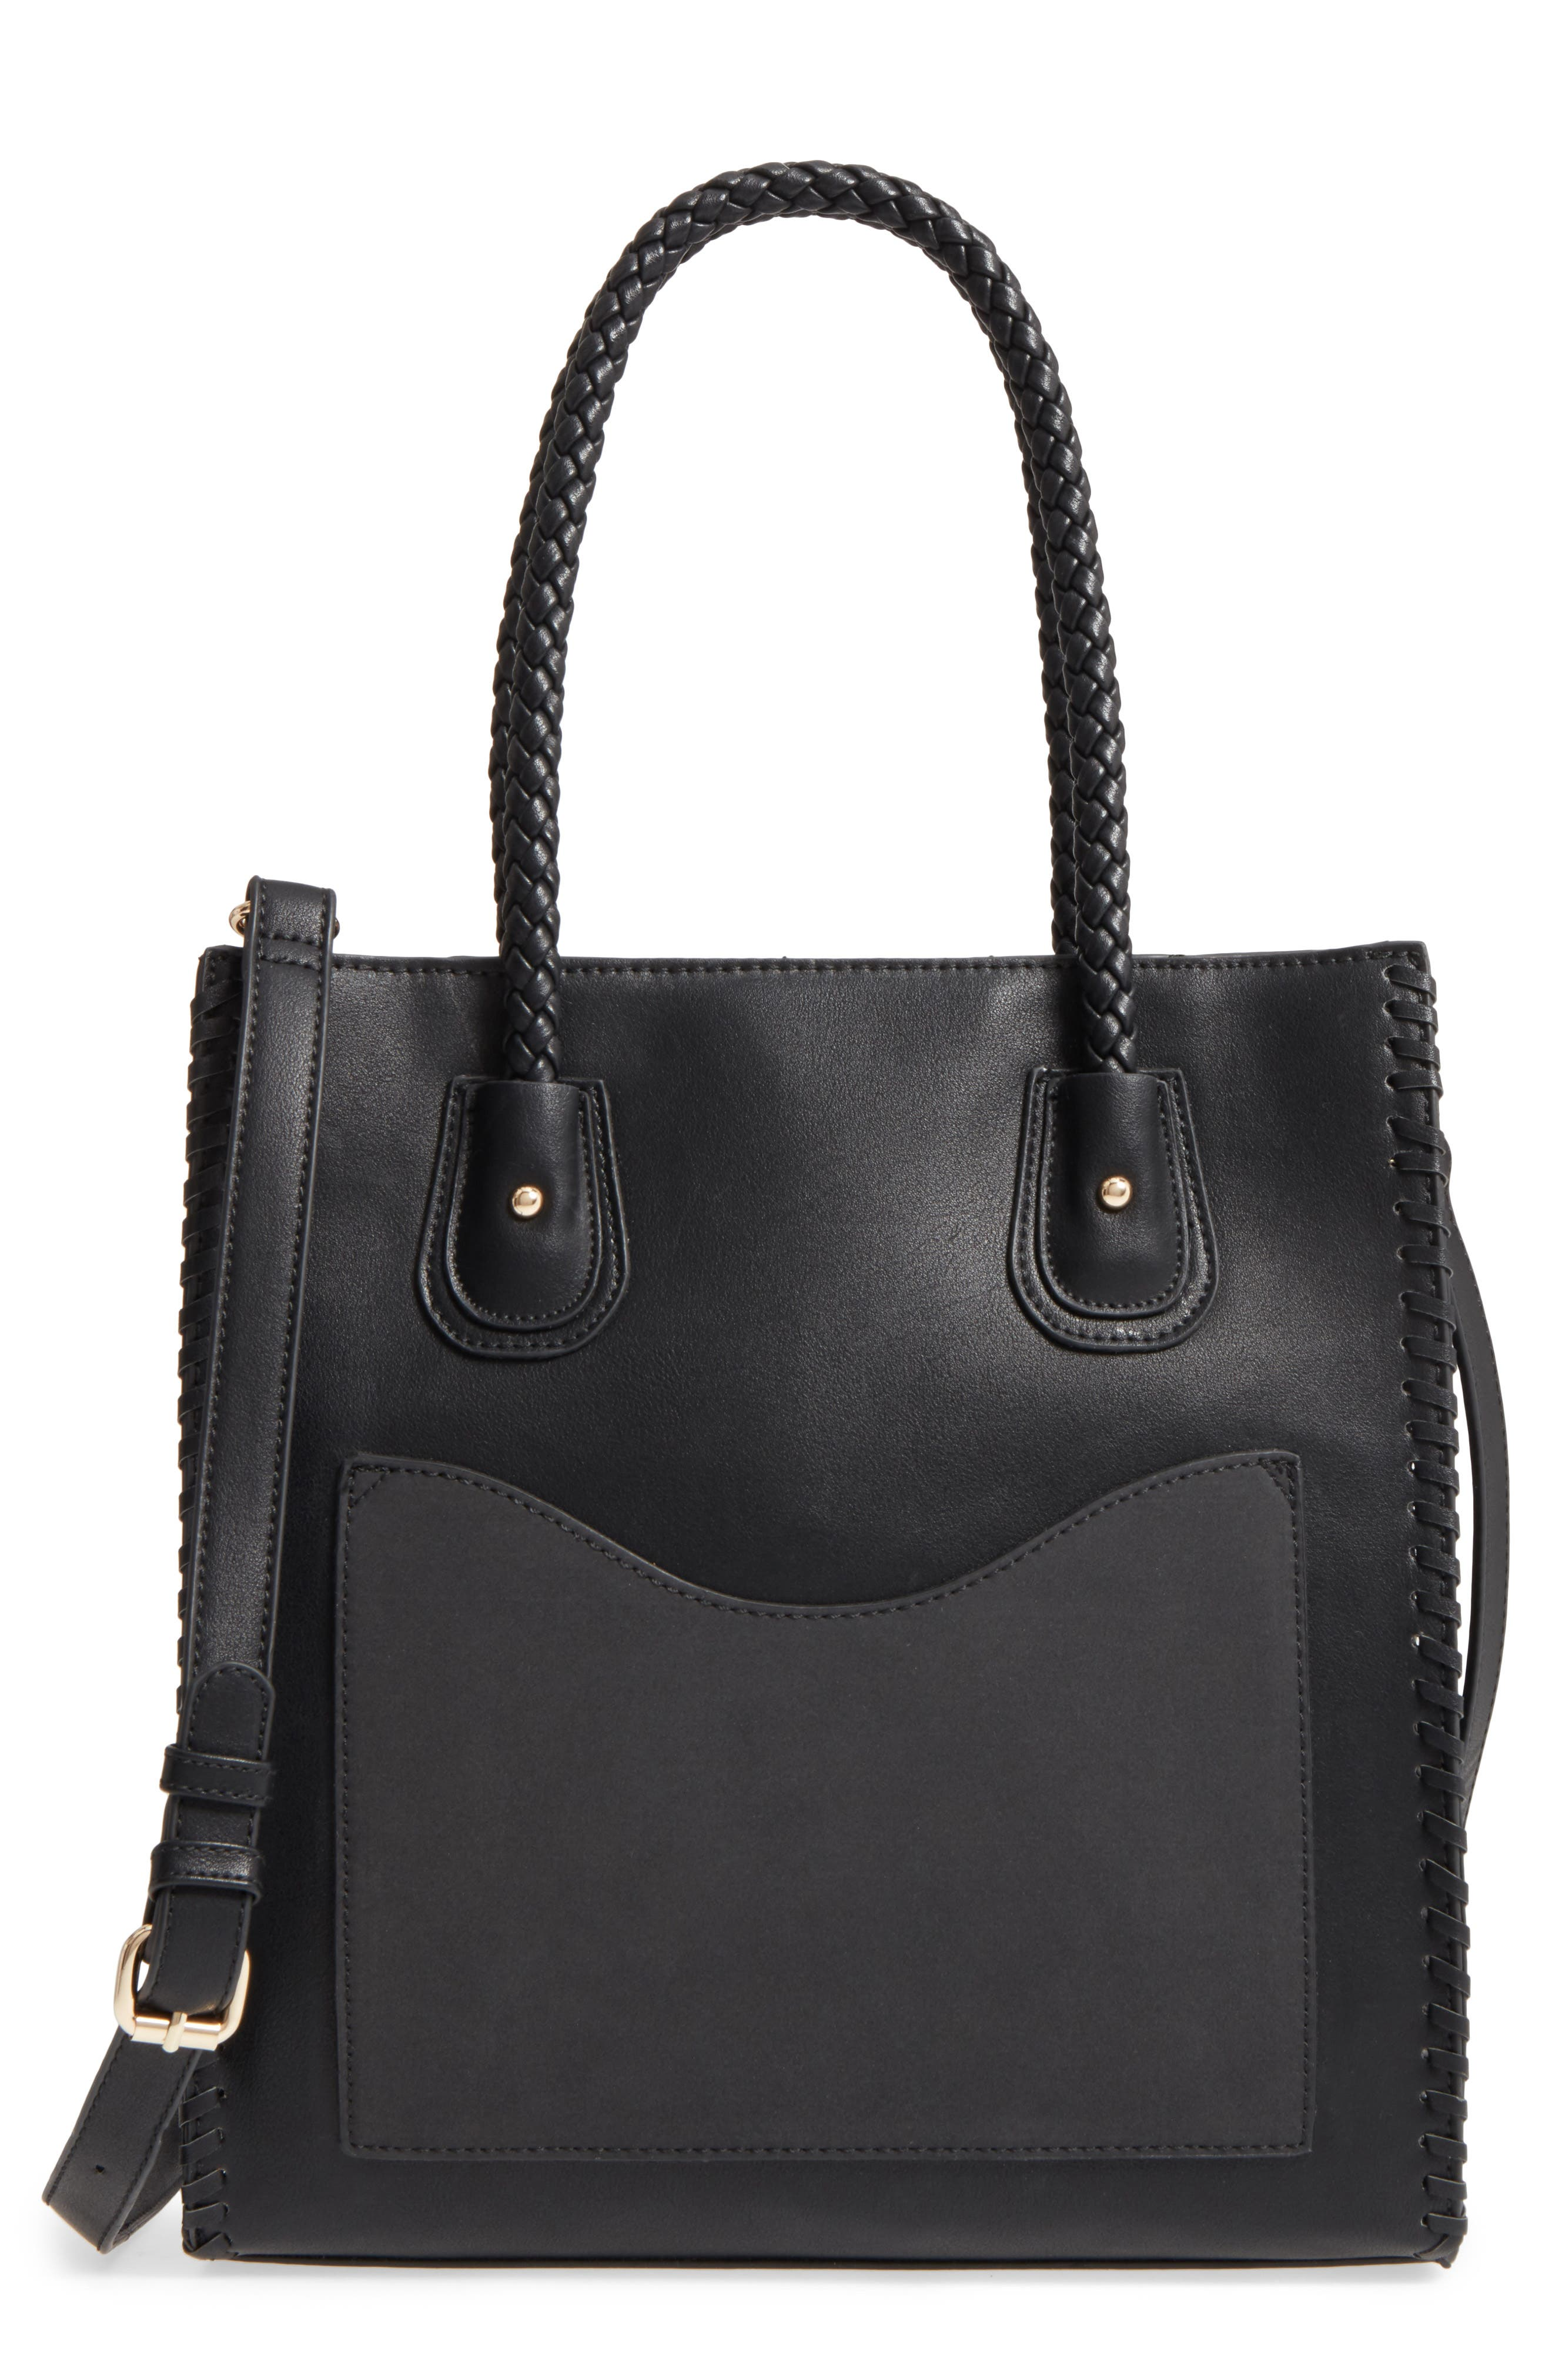 Emperia Whipstitch Faux Leather Tote